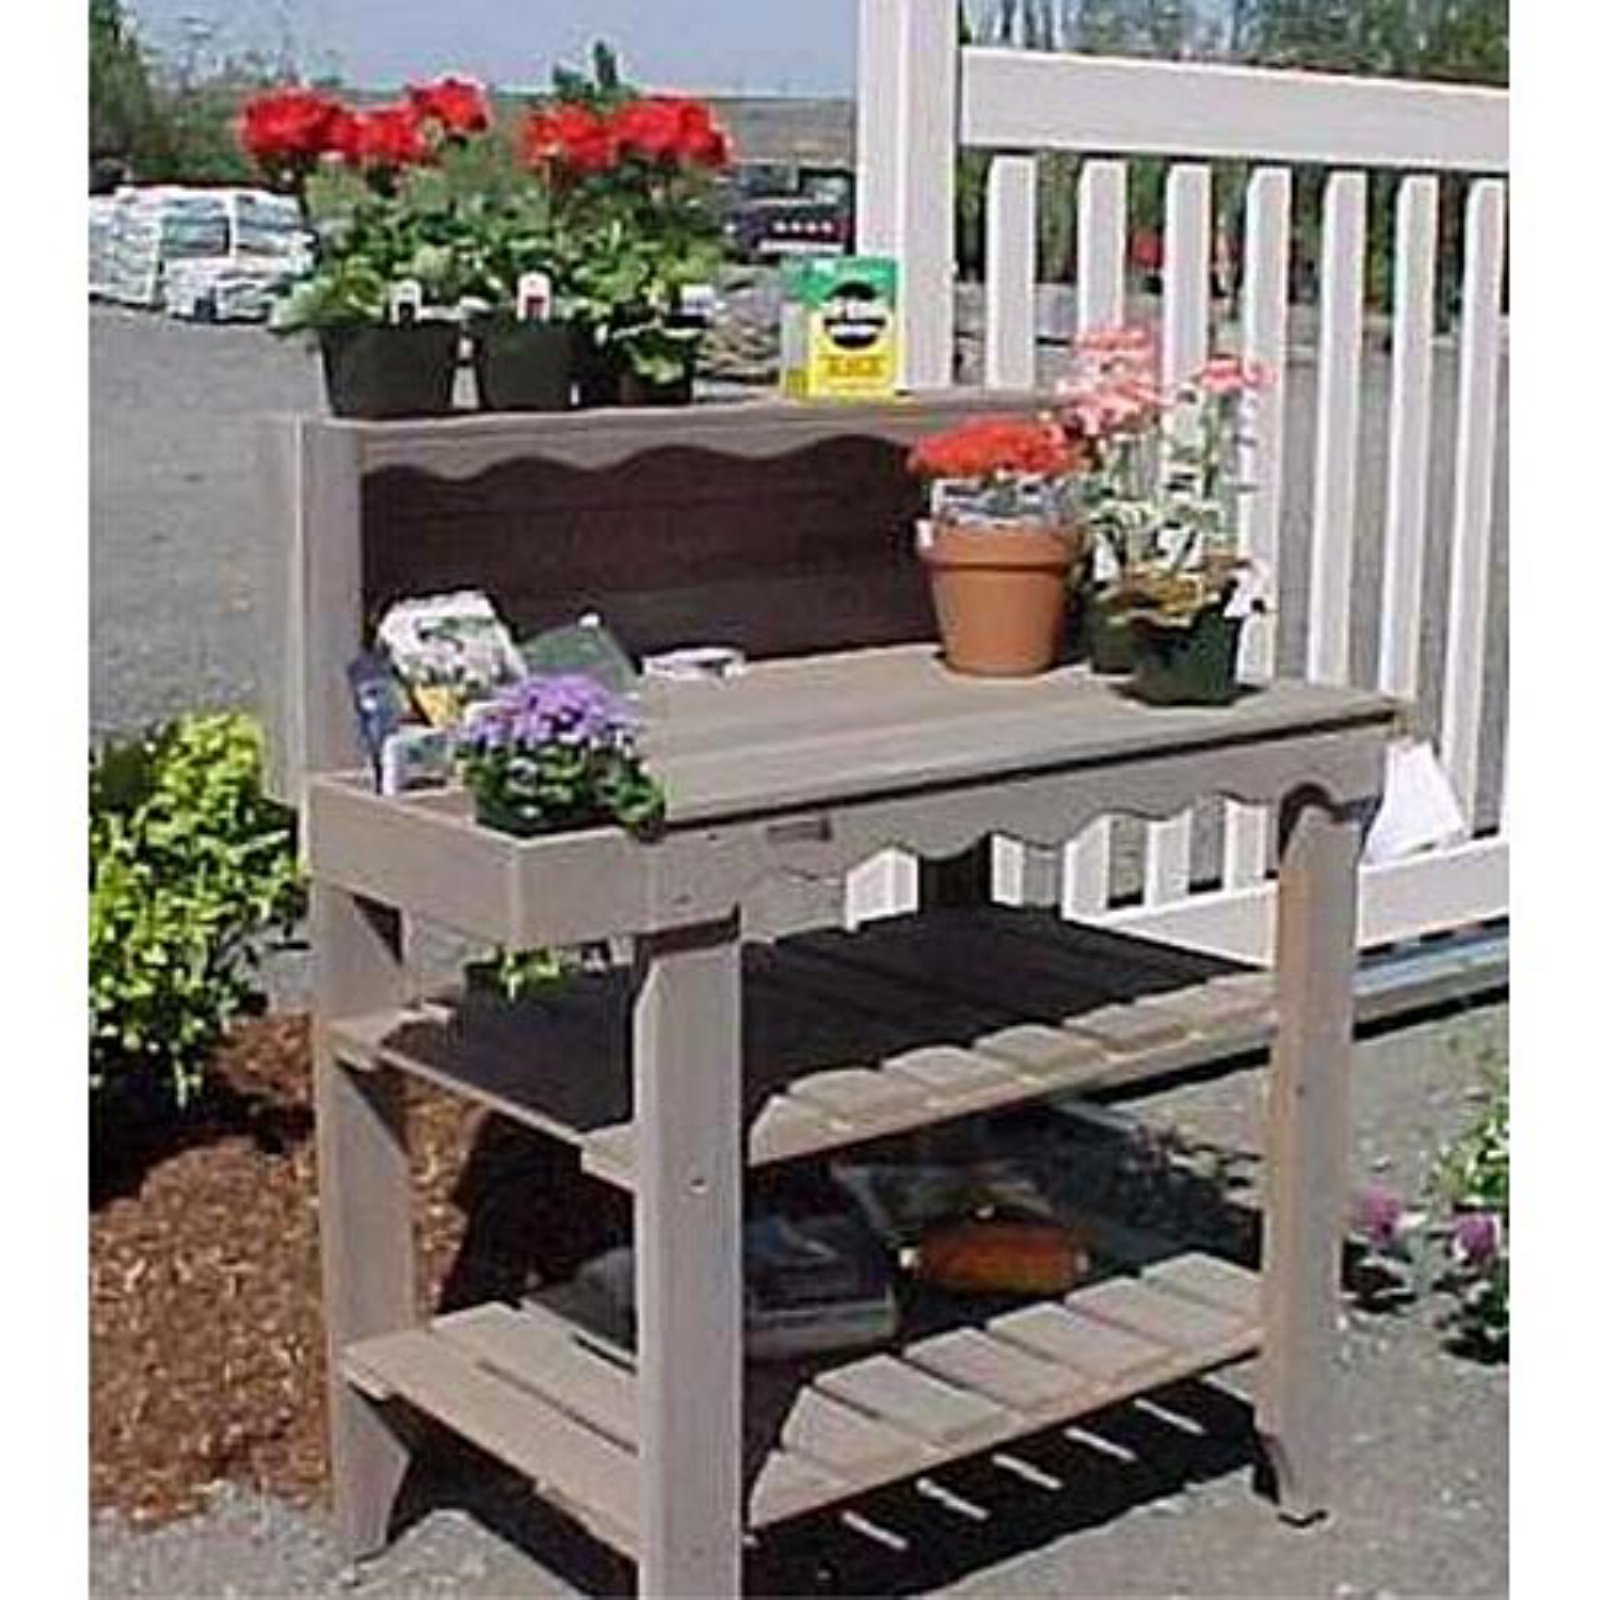 Planting Tables For Sale Wood Country Cedar Wood Deluxe Potting Bench Green In 2019